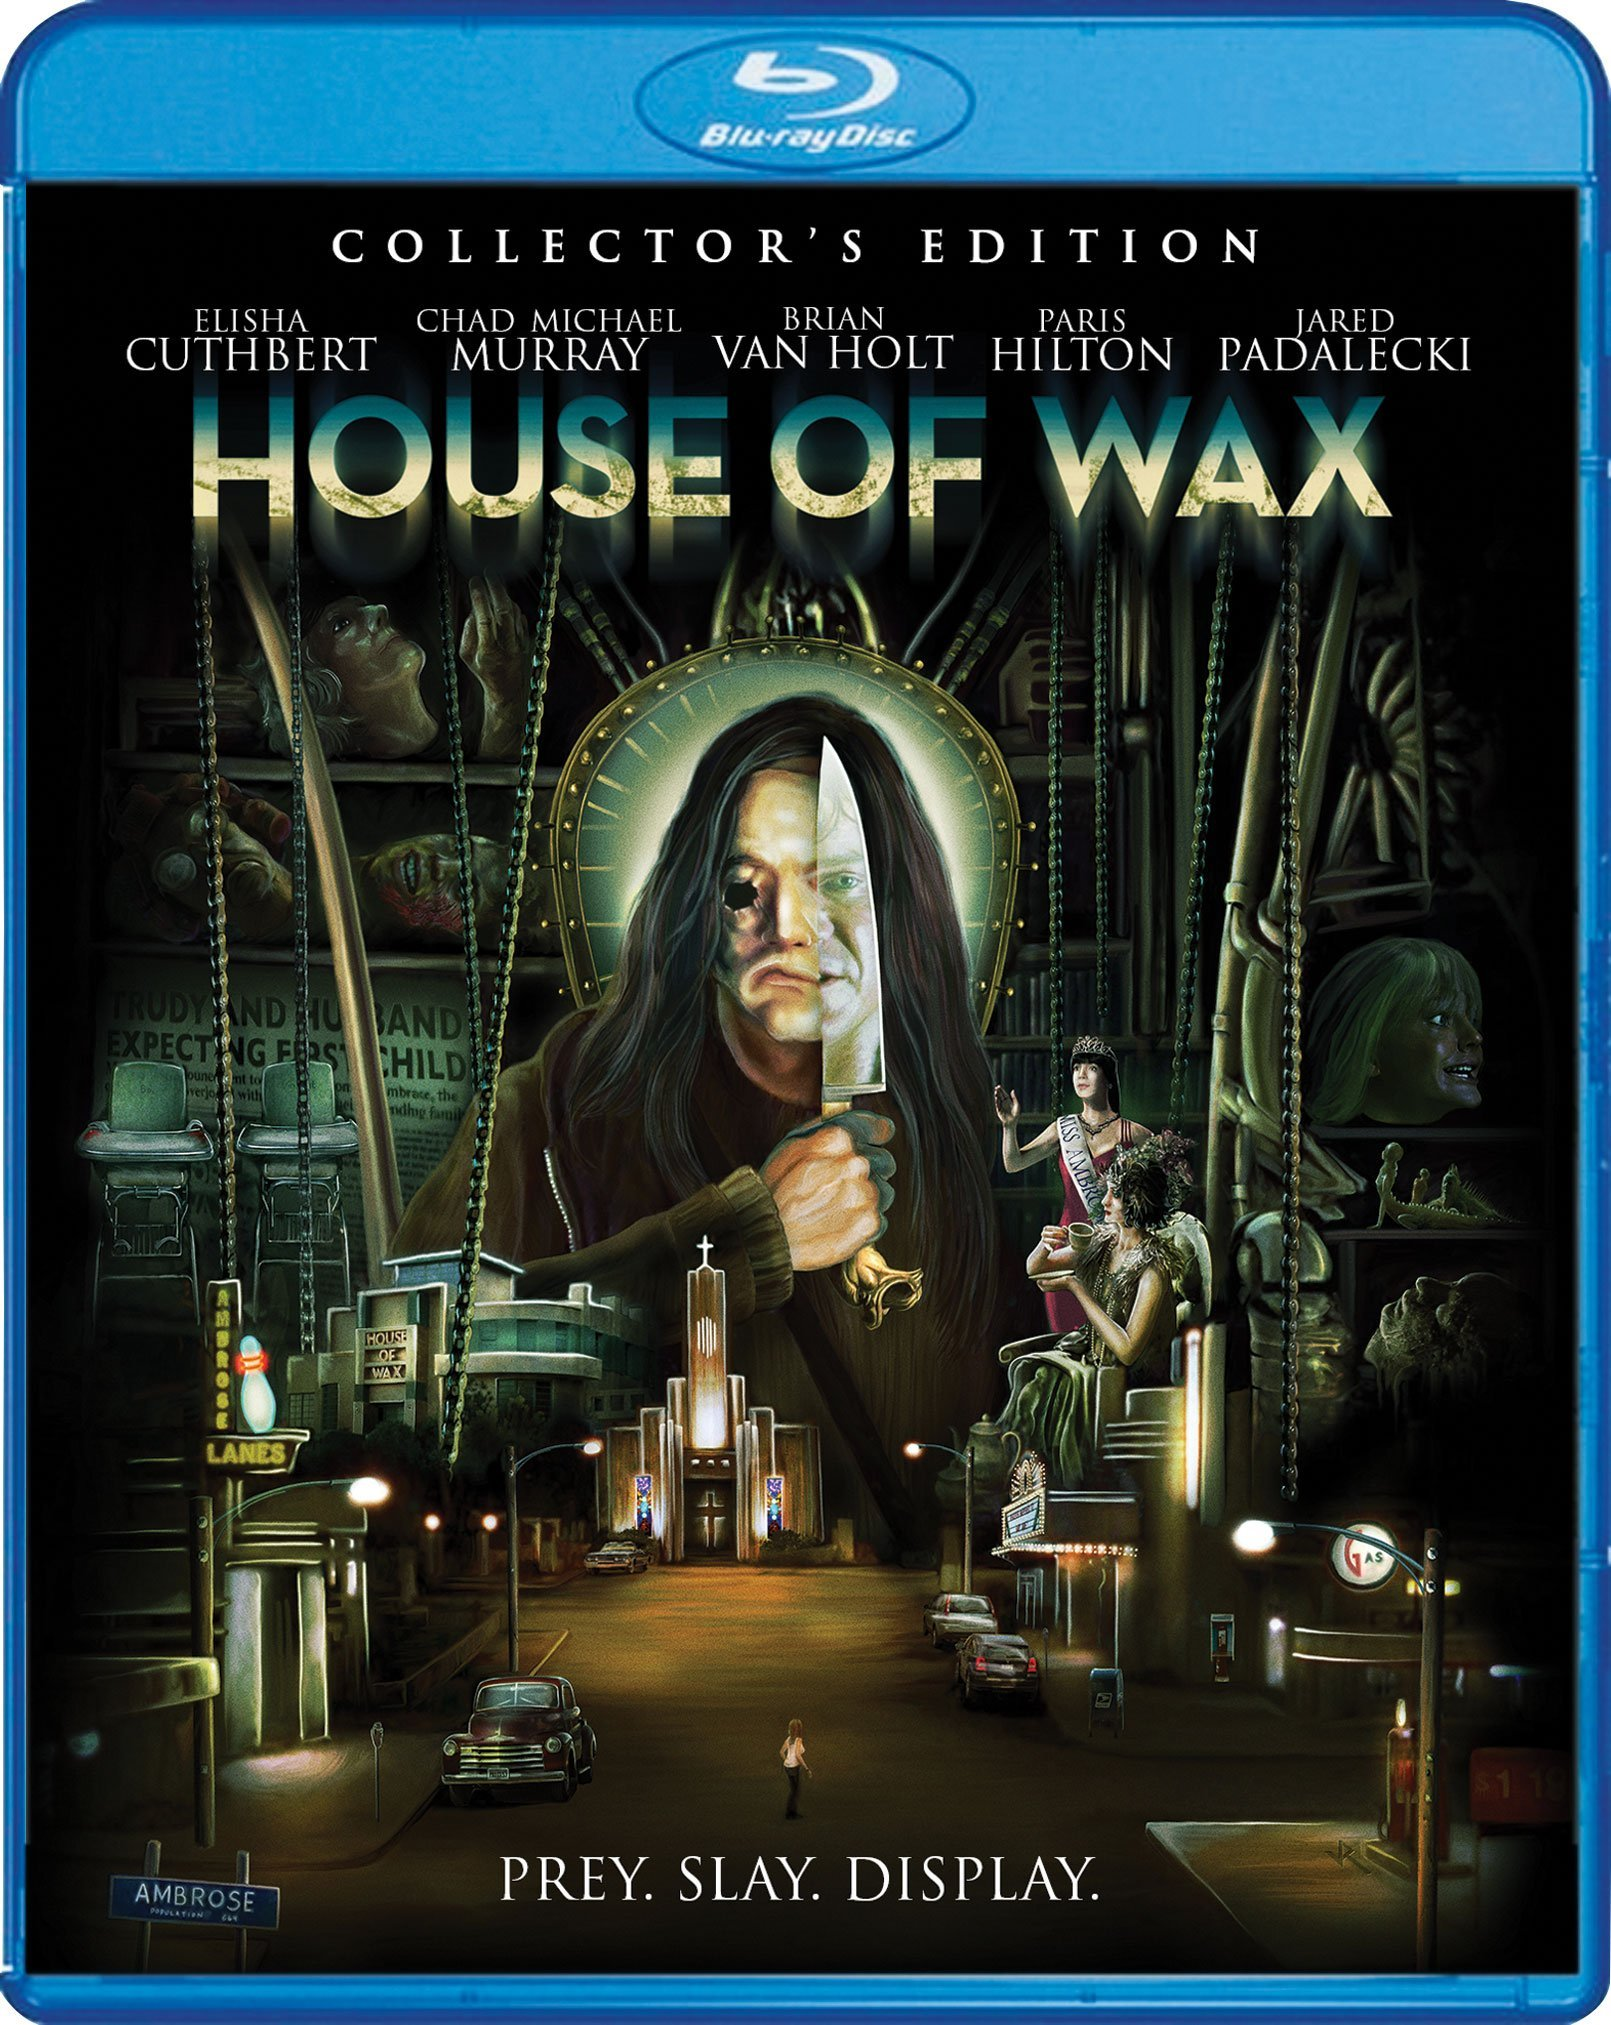 HOUSE OF WAX NOW AVAILABLE FROM SHOUT! FACTORY